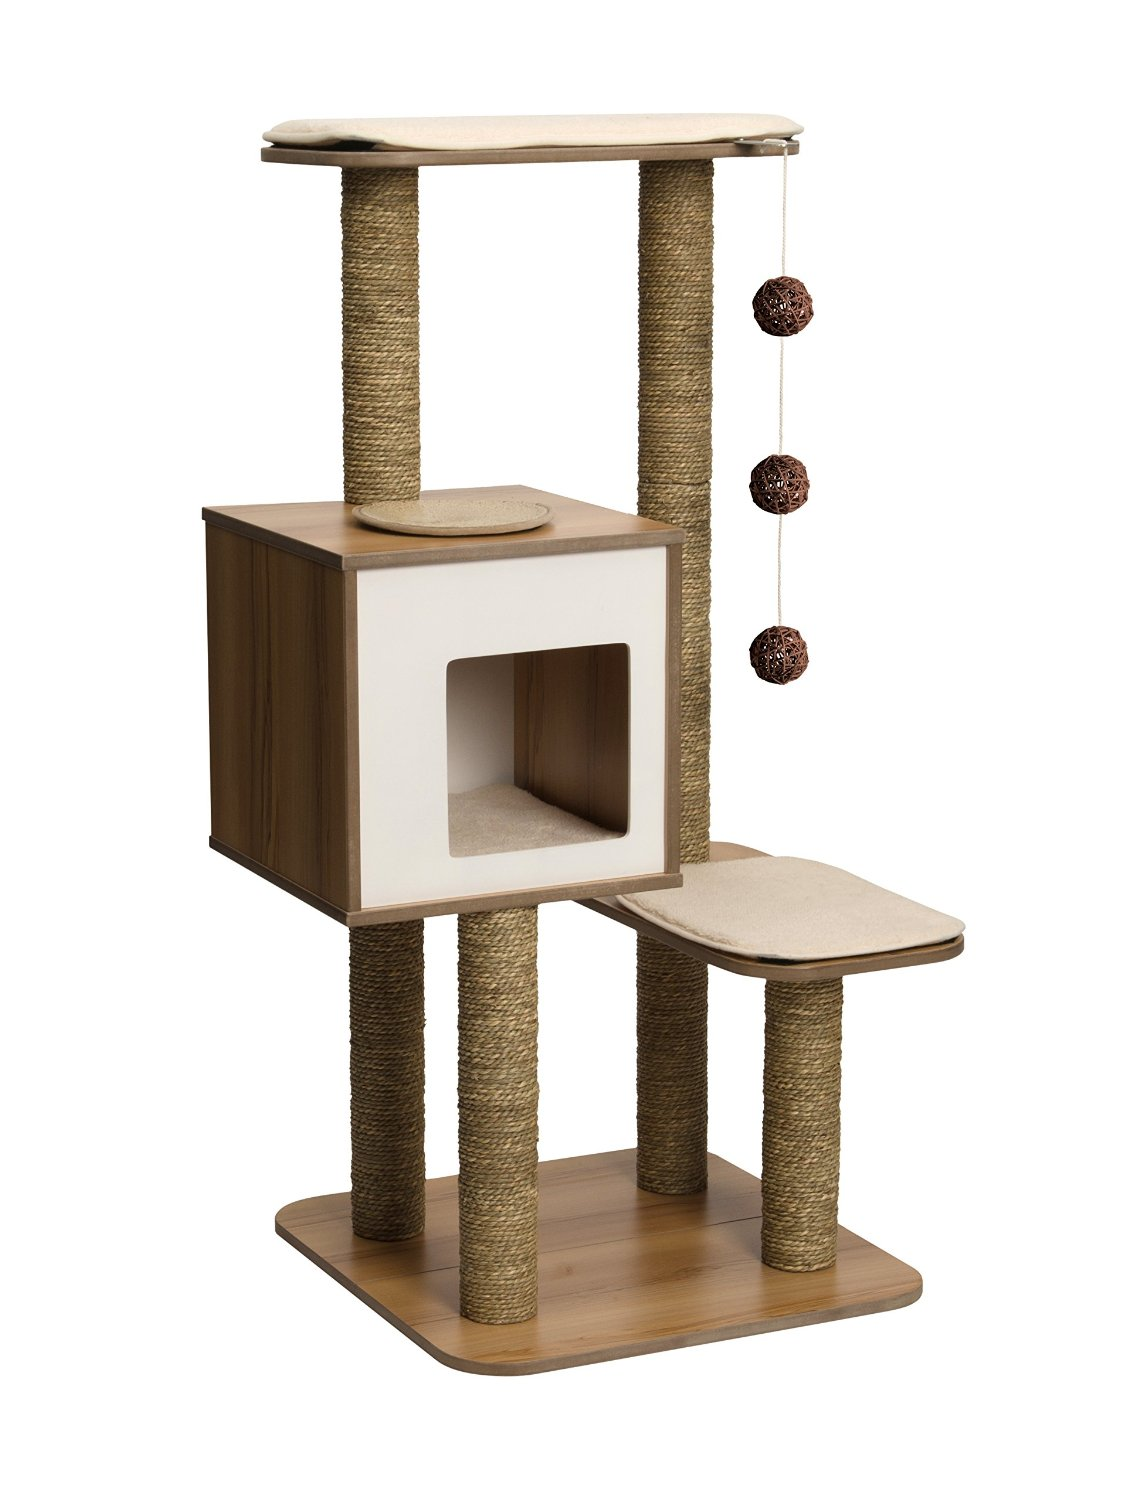 Vesper Natural Wood Cat Furniture